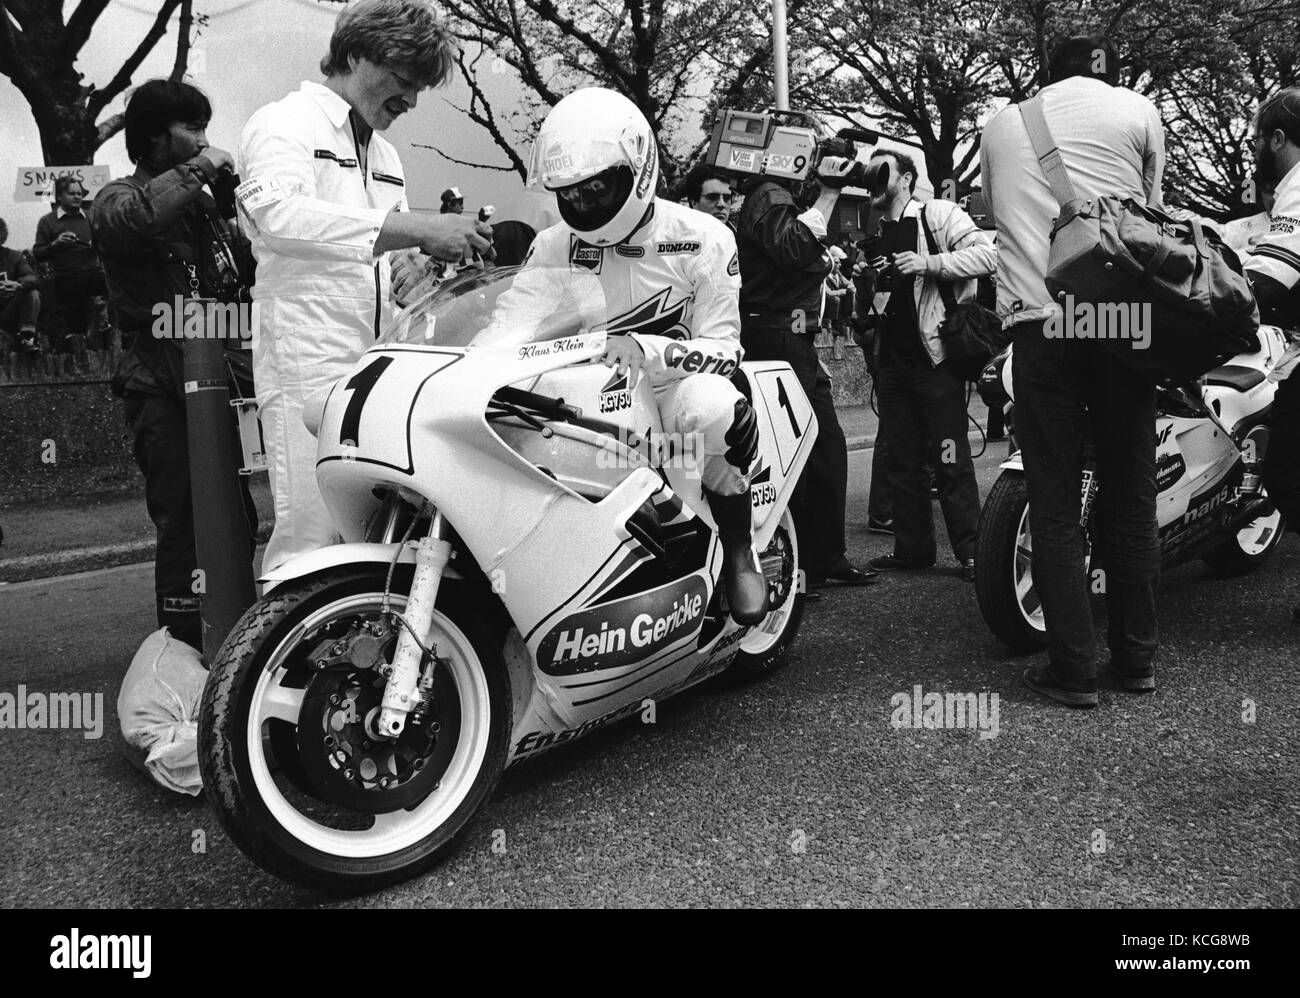 Klaus Klein motorcycle racer on the starting grid of the Isle of Man TT - Stock Image